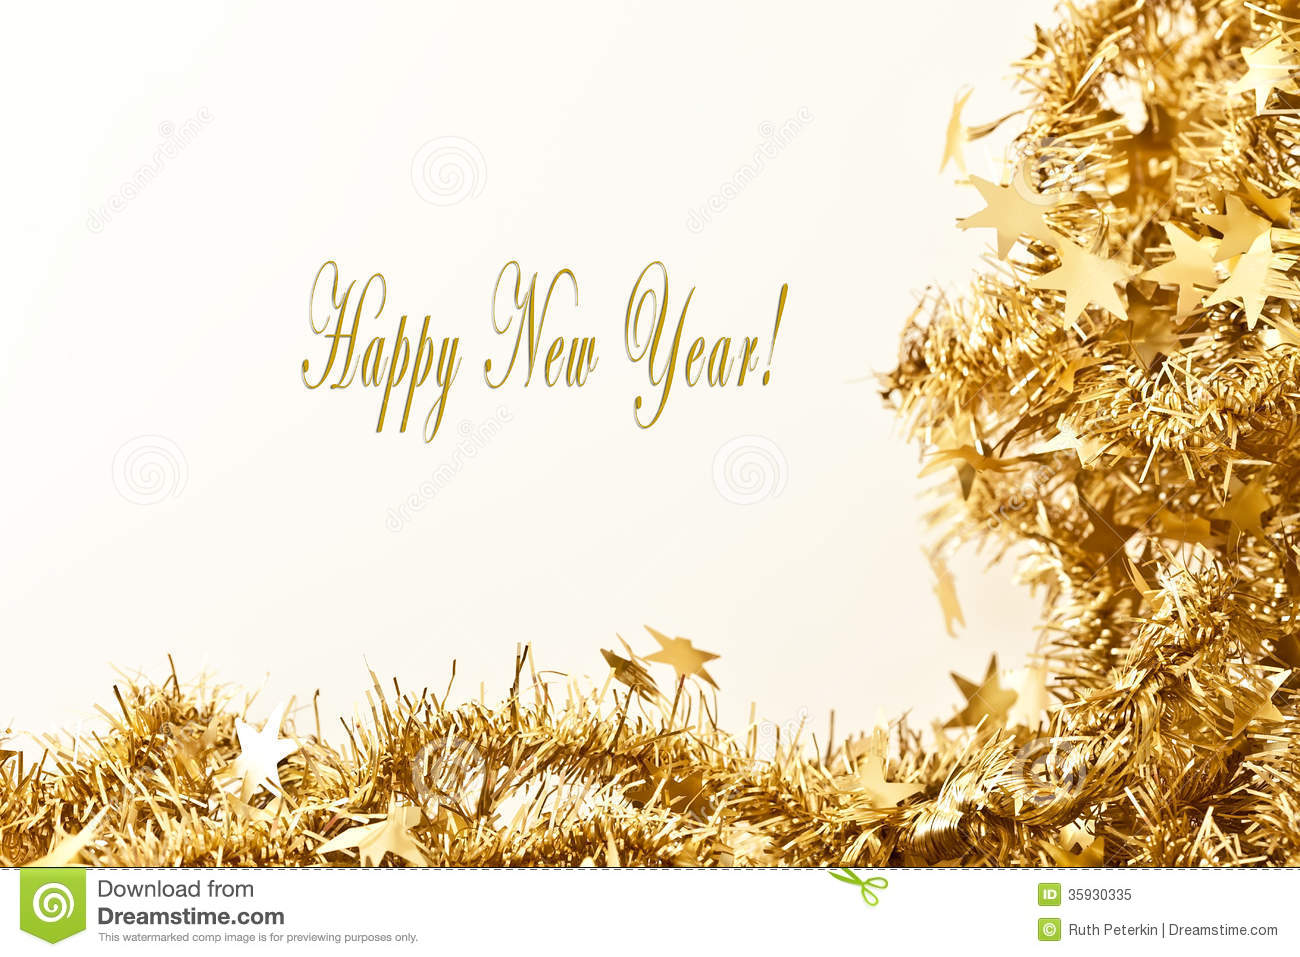 Happy New Year Card Royalty Free Stock Photo - Image: 35930335